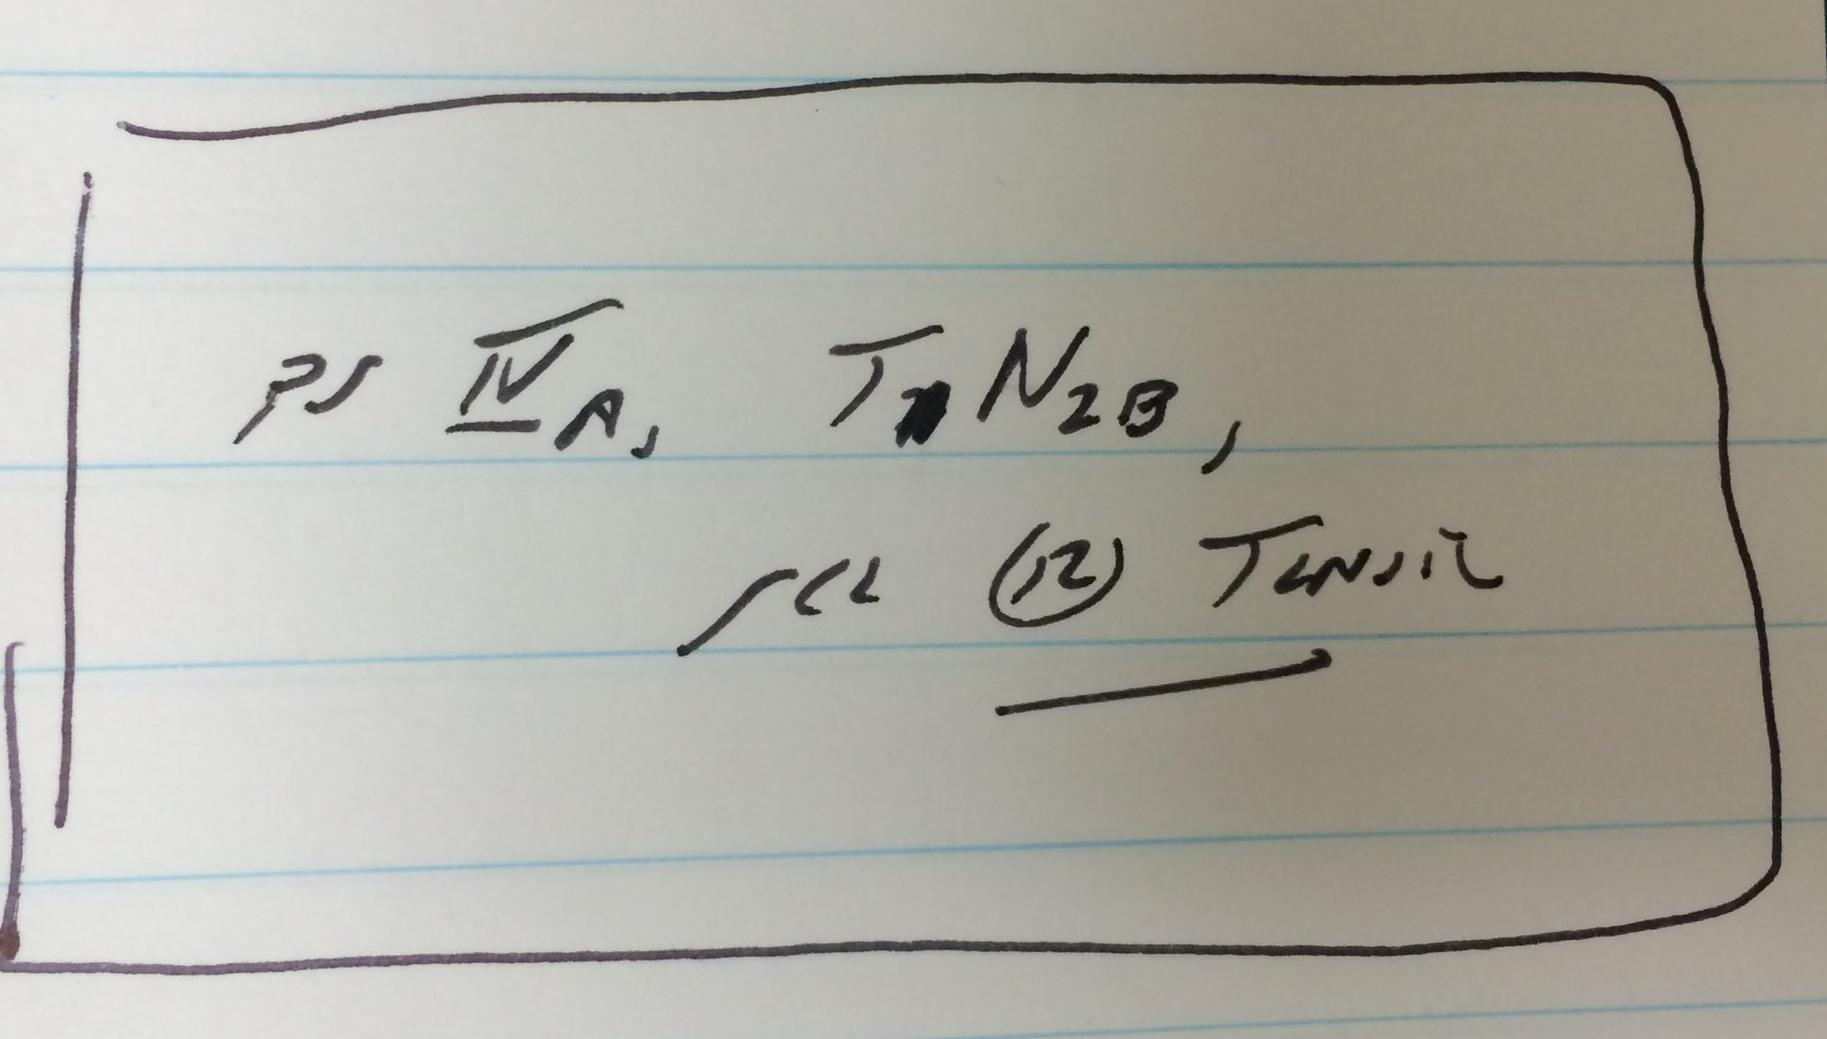 Dr. Ho wrote down my cancer diagnosis - Stage IV tonsil cancer. Later I learned that it was HPV-related, the official diagnosis was Squamous Cell Carcinoma of the left tonsil.